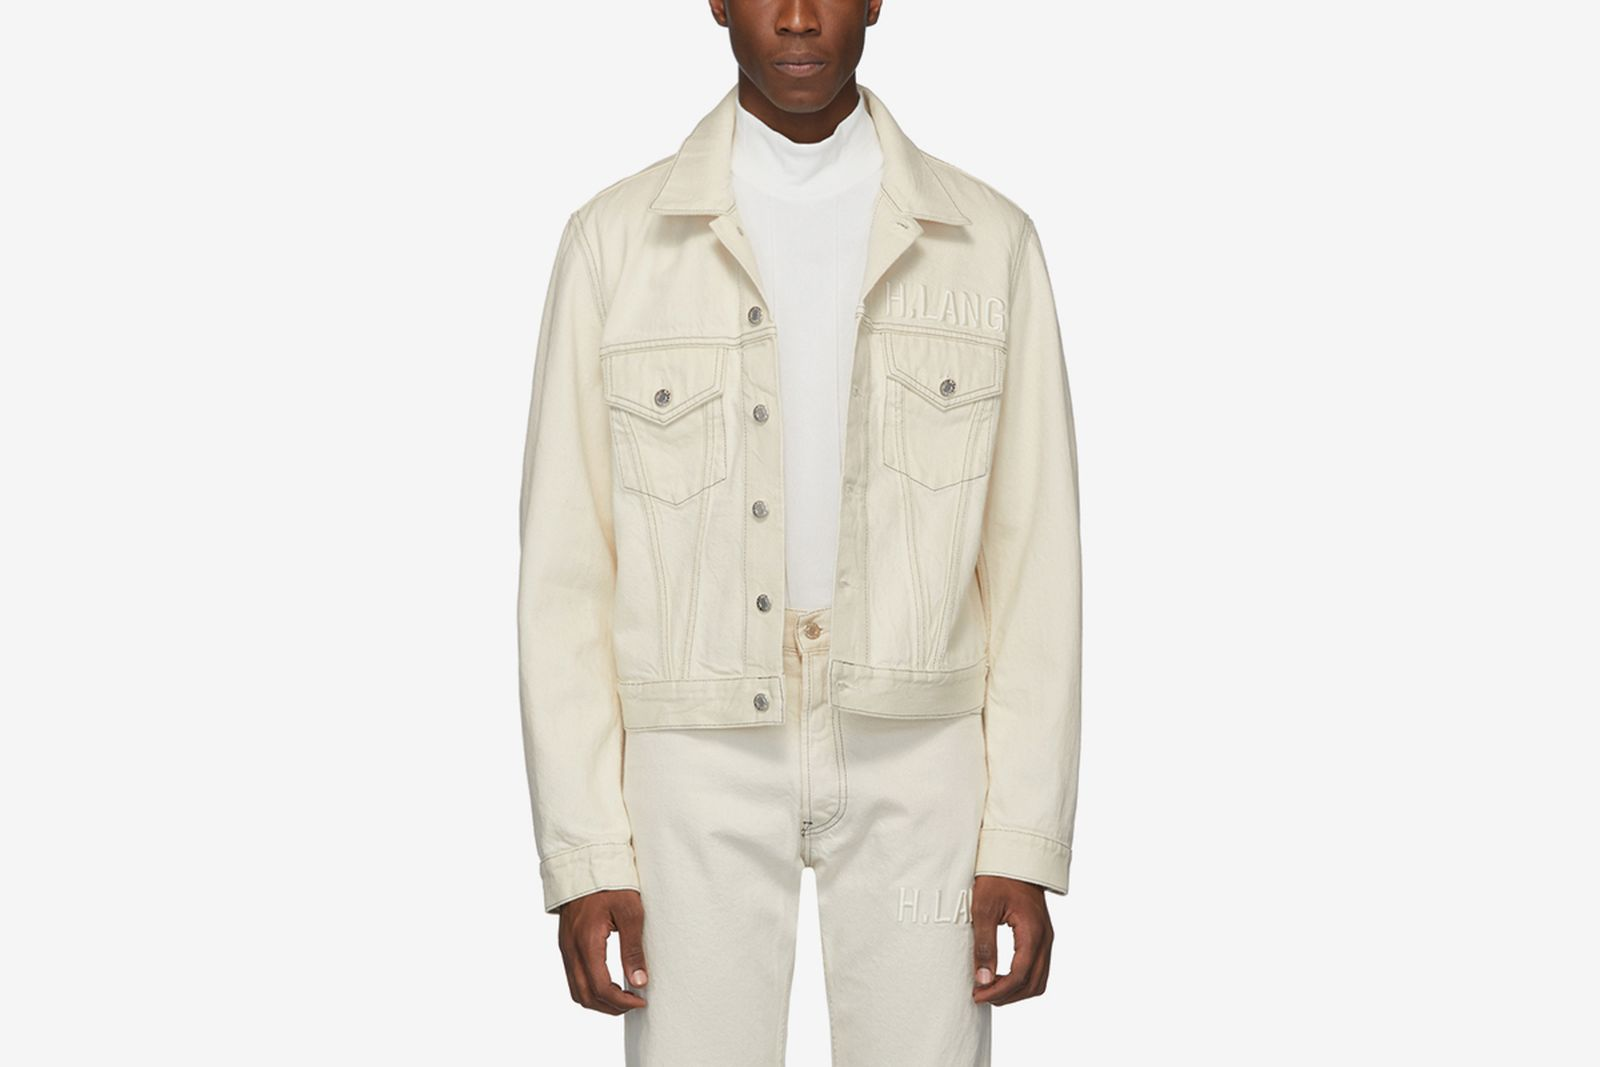 best trucker jackets main Levi's Stolen Girlfriends Club helmut lang